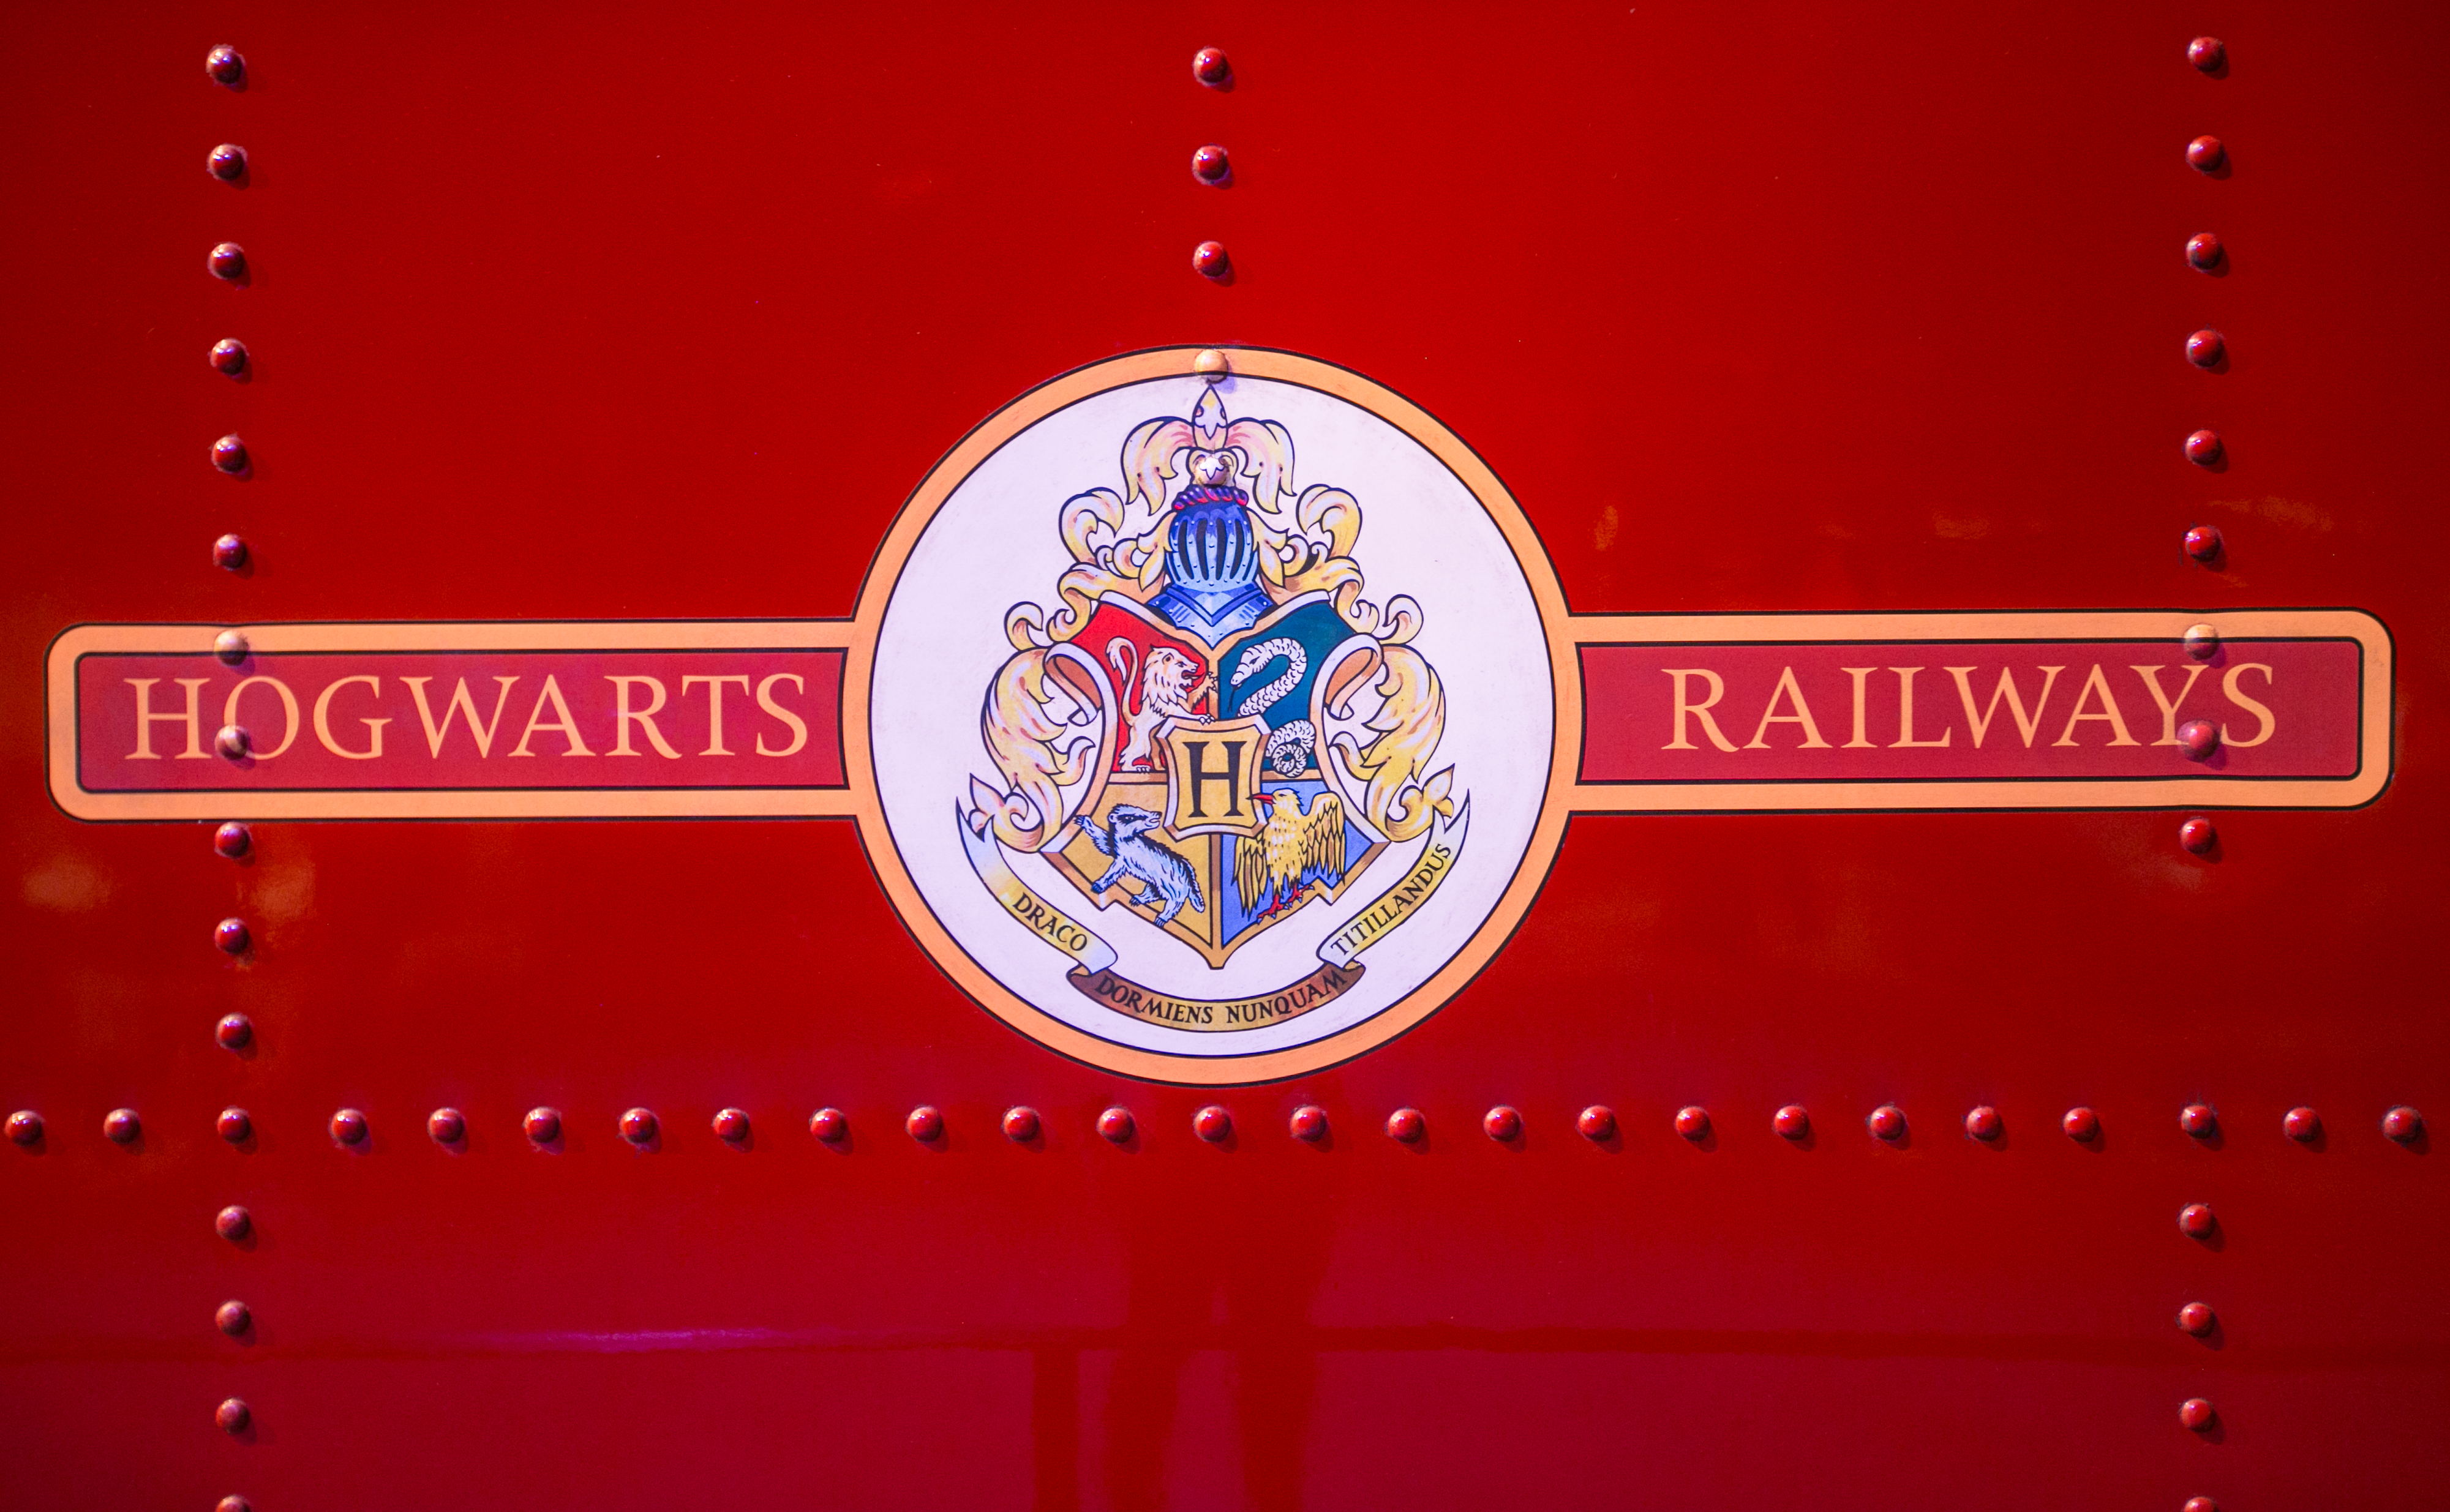 harry-potter-studio-tour-hogwarts-train